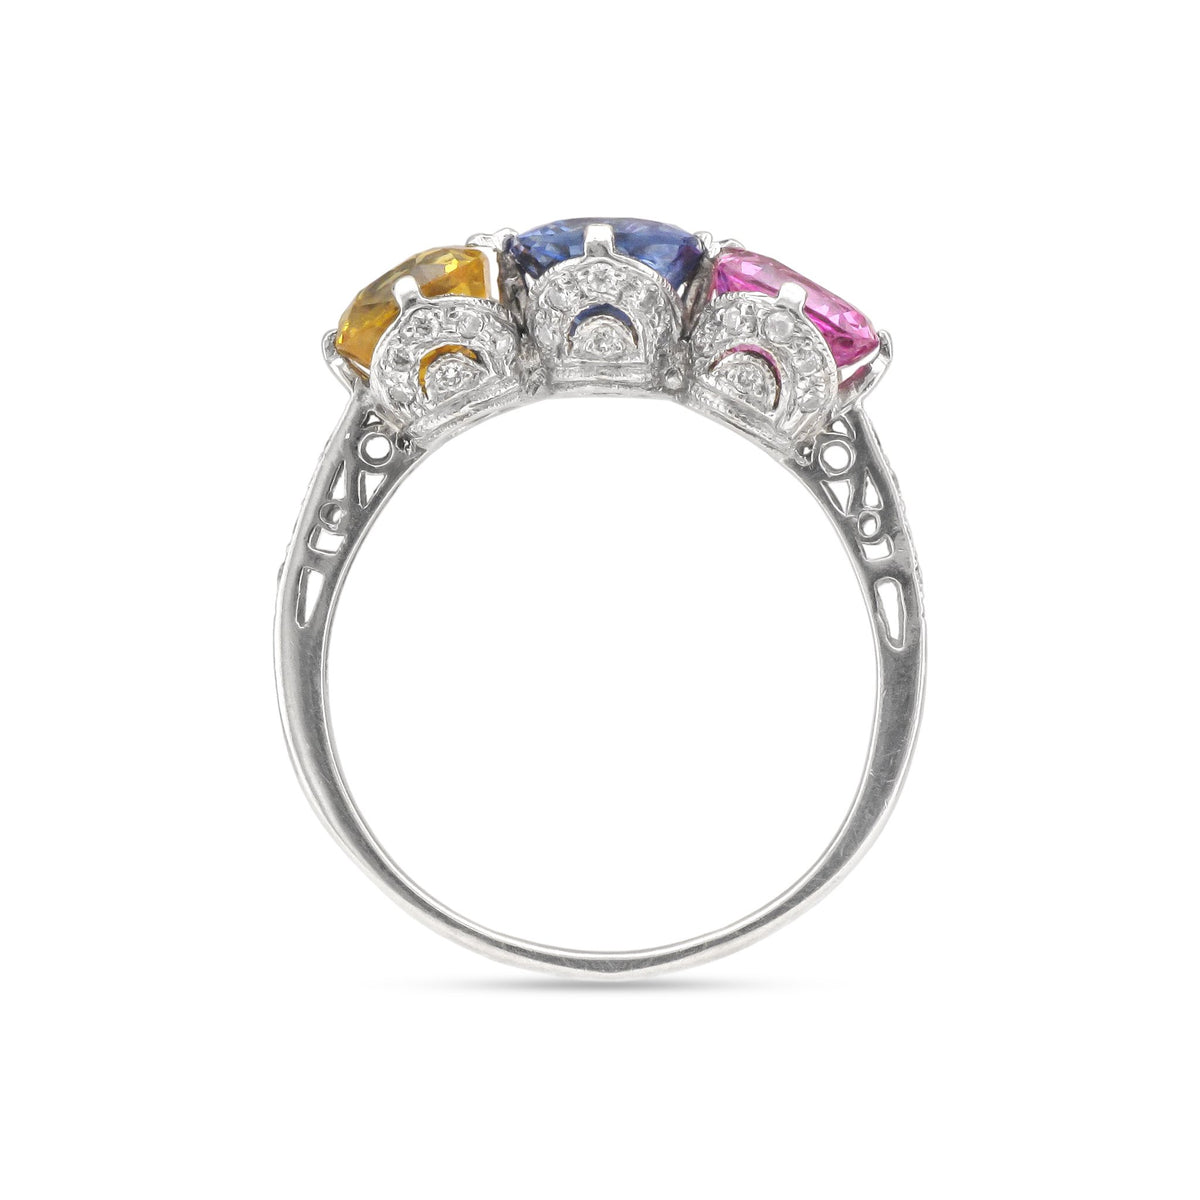 Vintage 18ct White Gold Sapphire and Diamond Ring (Pink, Blue & Yellow Sapphires)